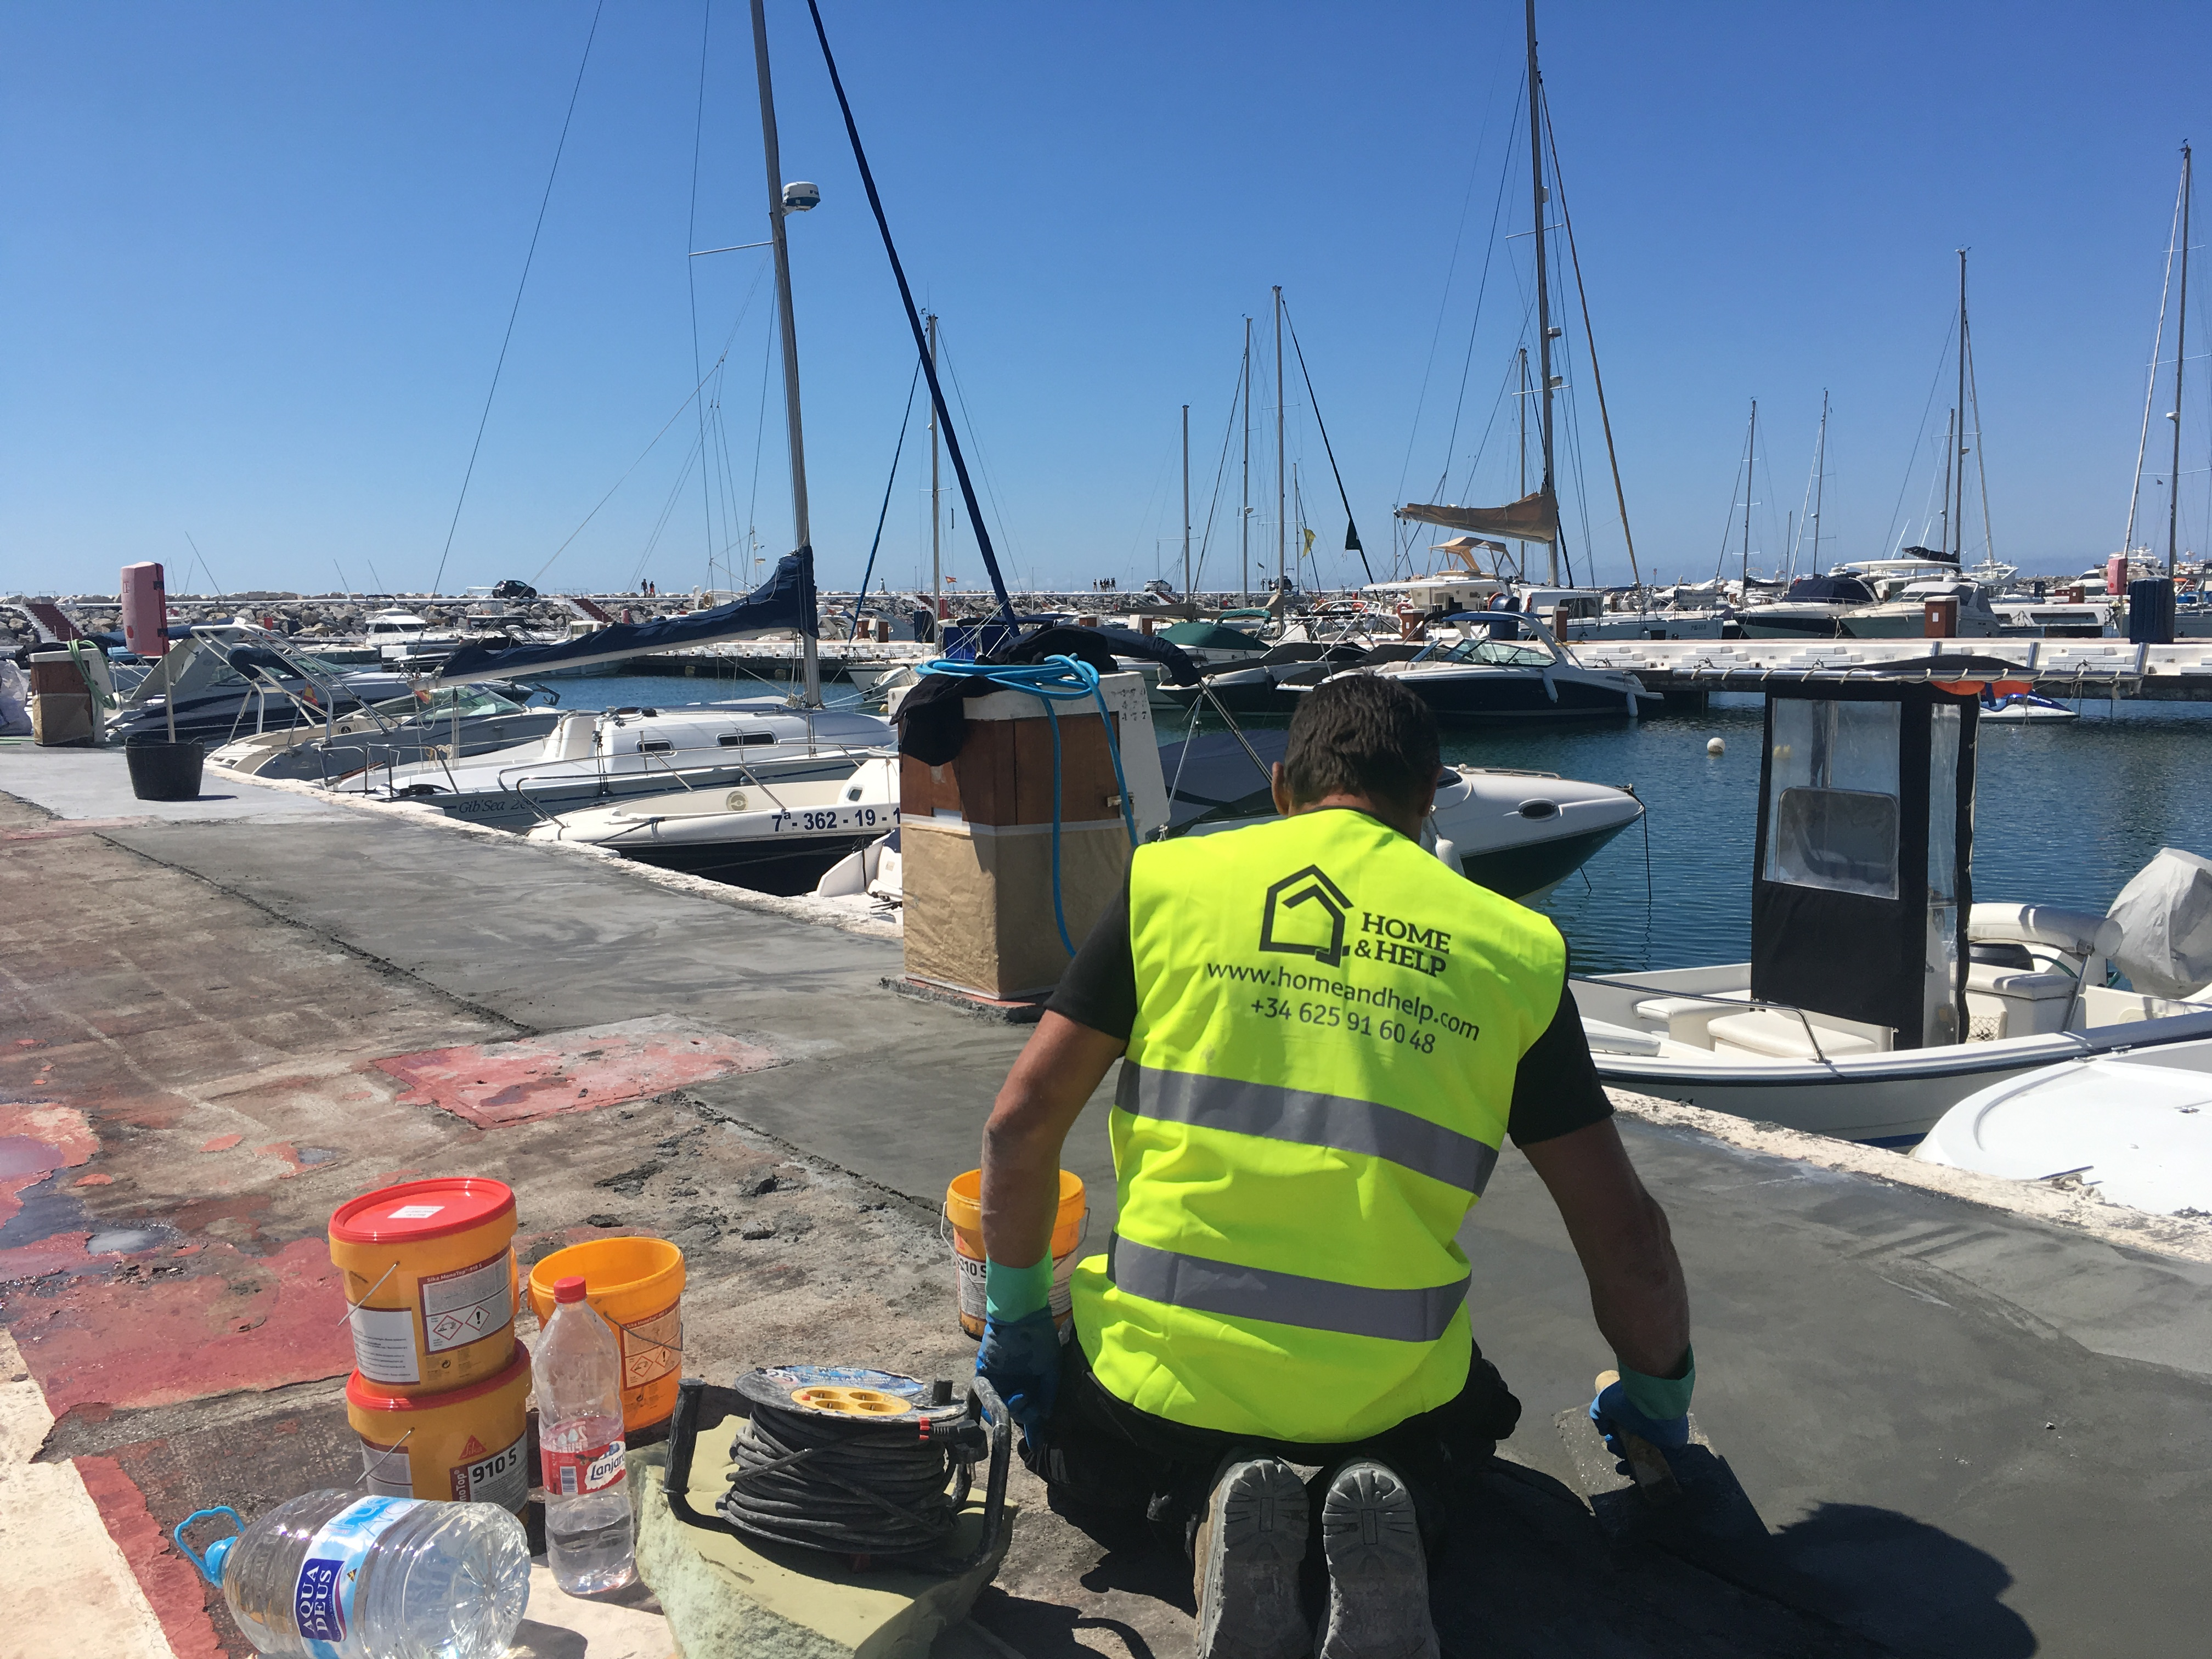 Restoration of the piers in Puerto Banus - s3 - homeandhelp.com